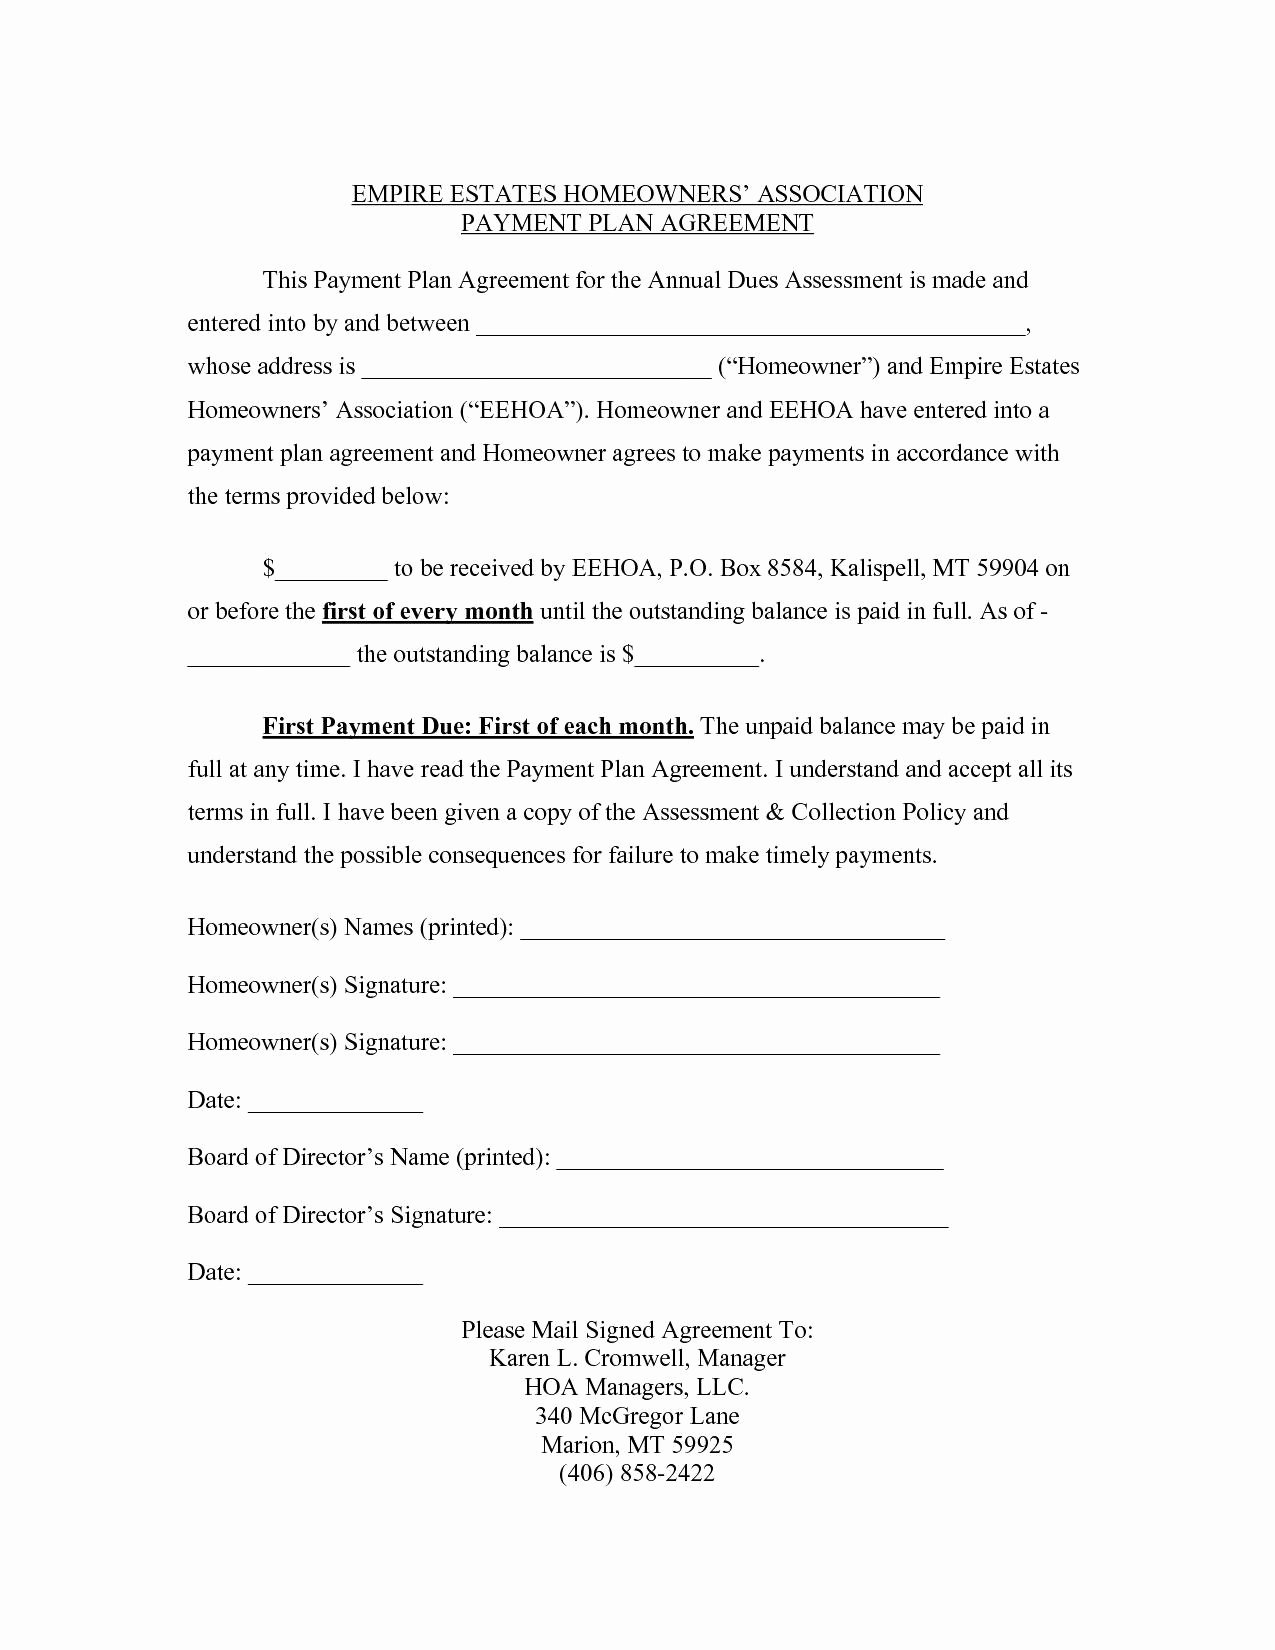 Auto Accident Settlement Agreement Sample Inspirational Full and Final Settlement Letter Template Car Accident